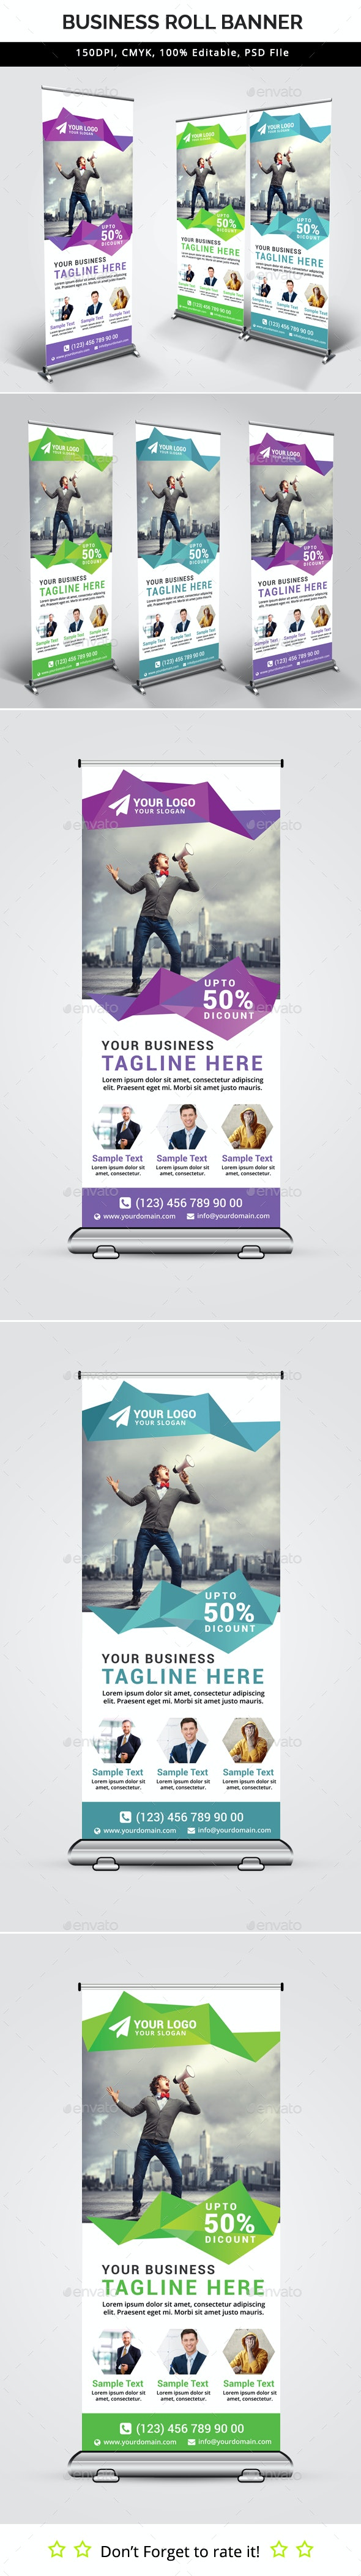 Business Roll Up Banner V32 - Signage Print Templates